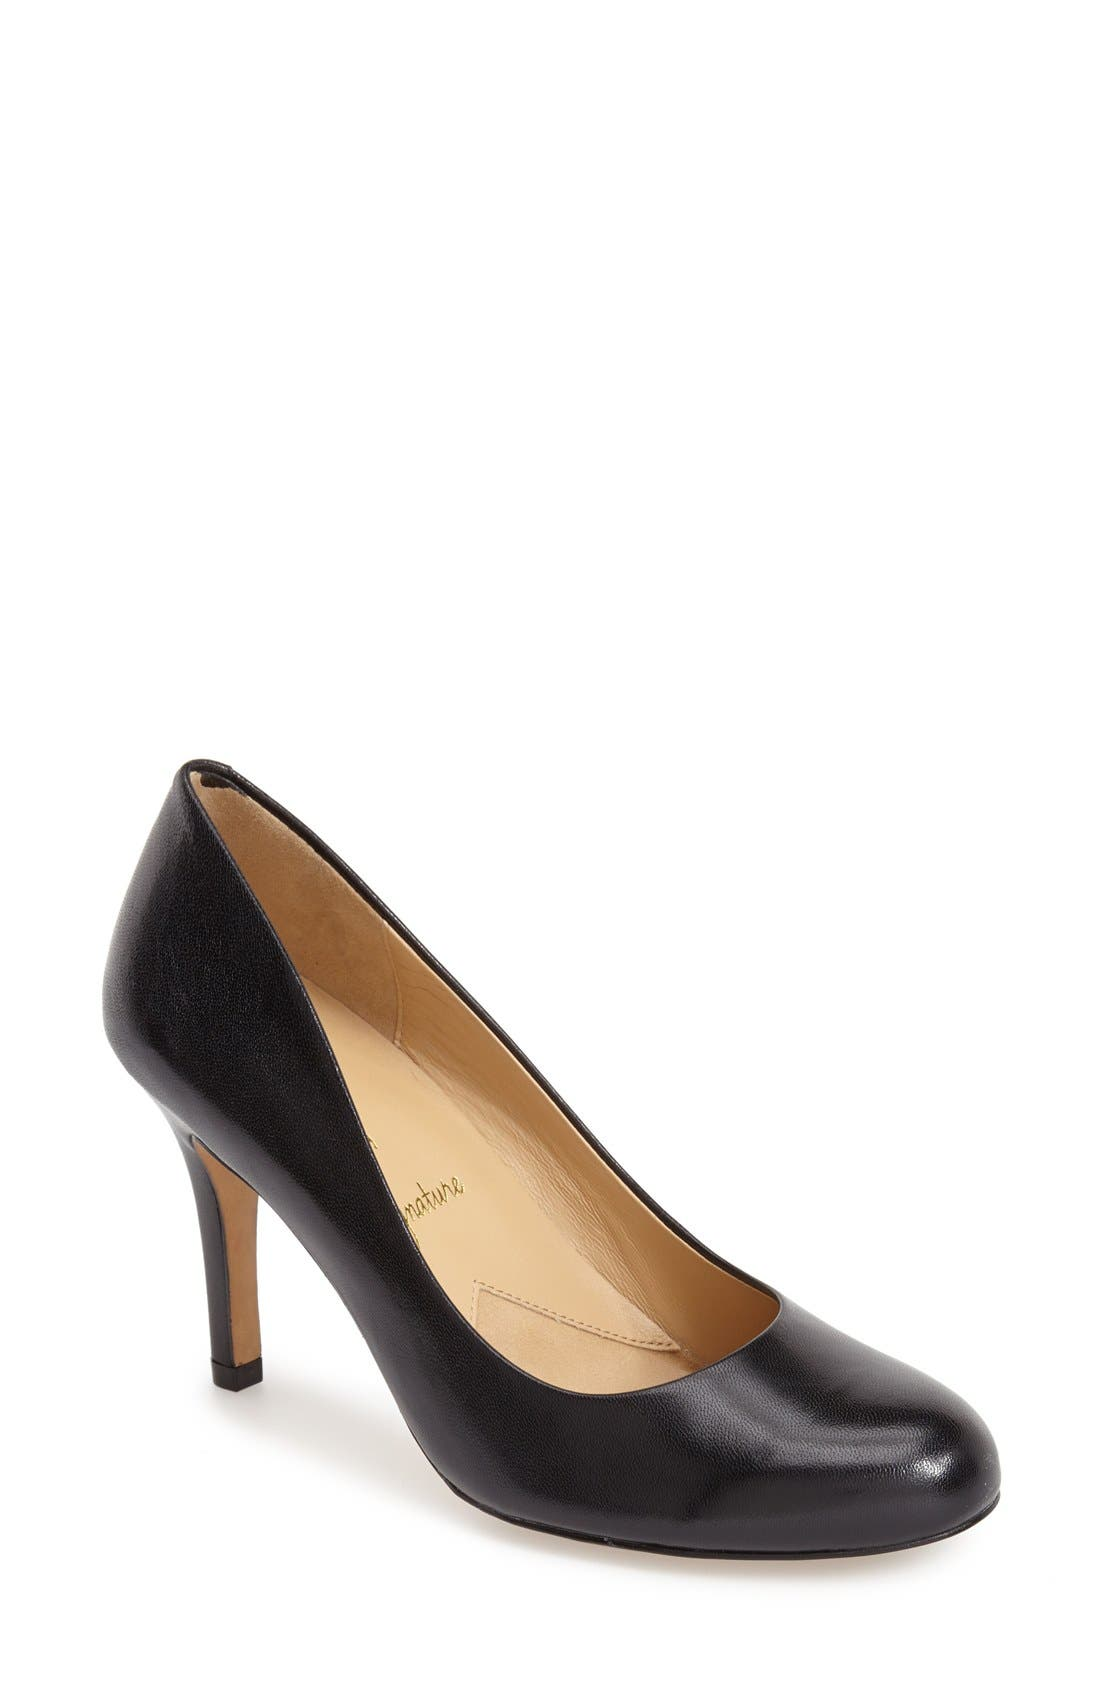 TROTTERS, 'Signature Gigi' Round Toe Pump, Main thumbnail 1, color, BLACK